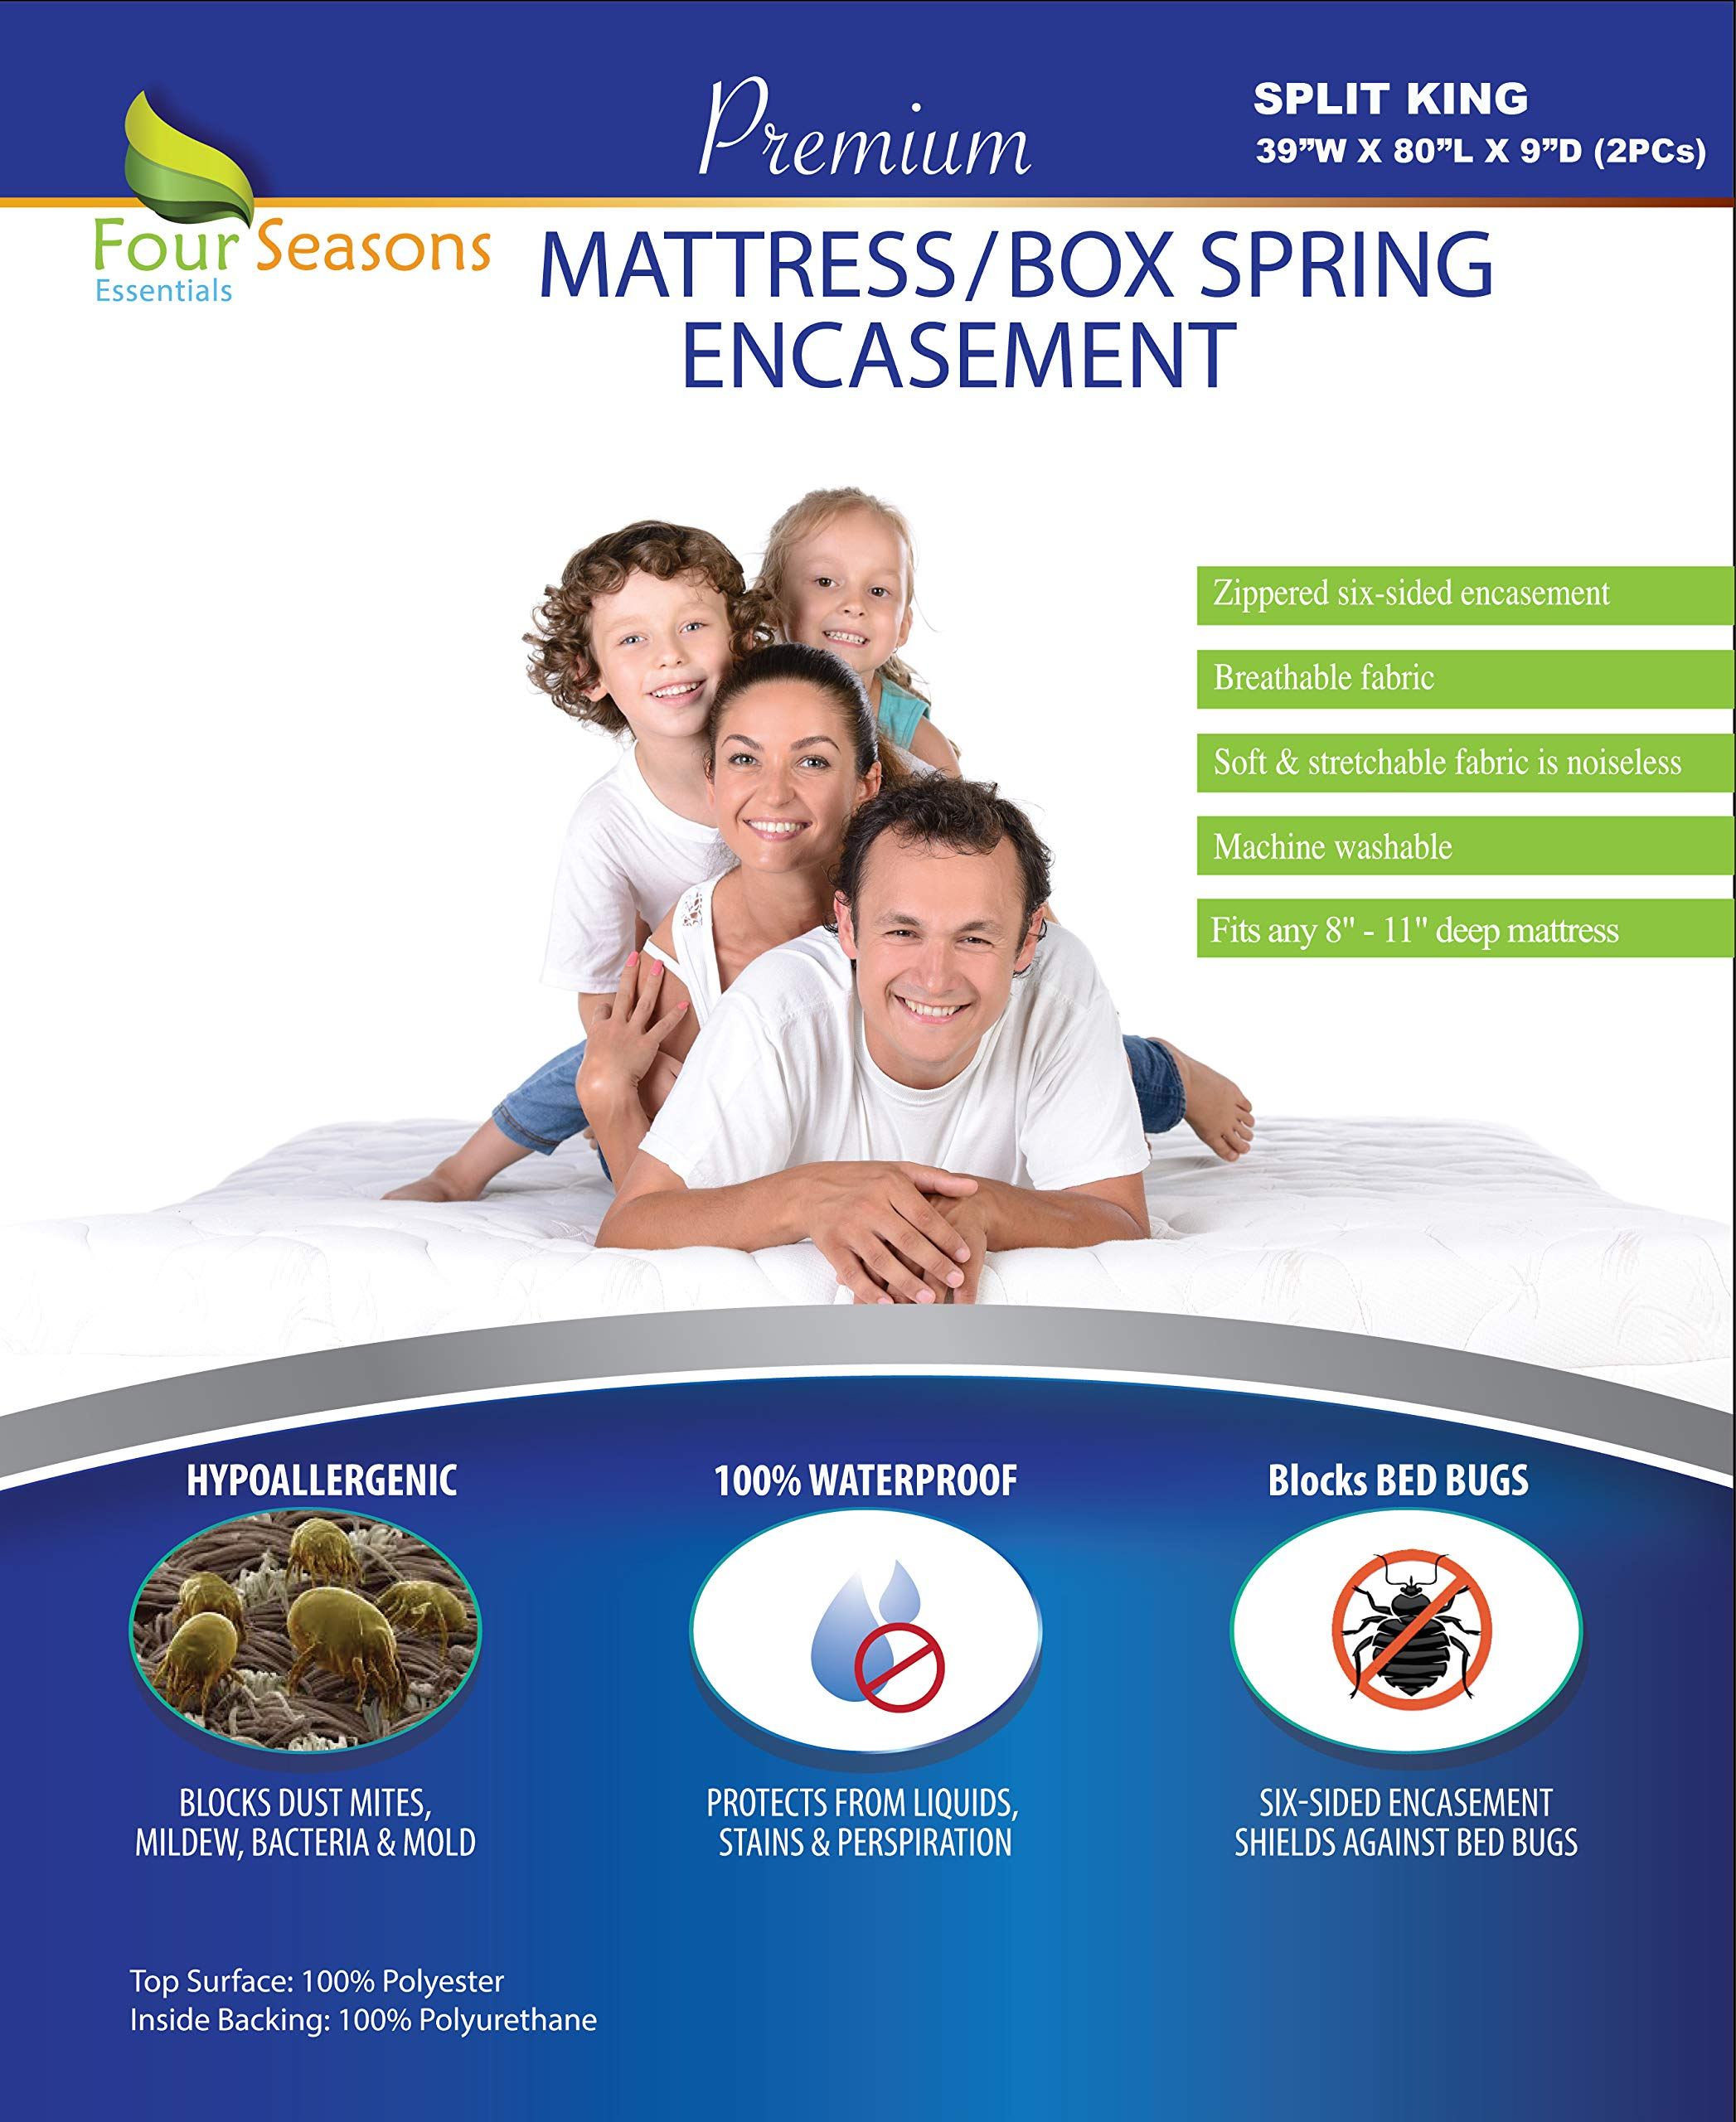 Split King Mattress / Box Spring Encasement 39''Wx80''Lx9''D (2PCs) - Bedbug Waterproof Zippered Protector Hypoallergenic Premium Quality Cover Protects Against Dust Mites Allergens Vinyl-Free Breathable